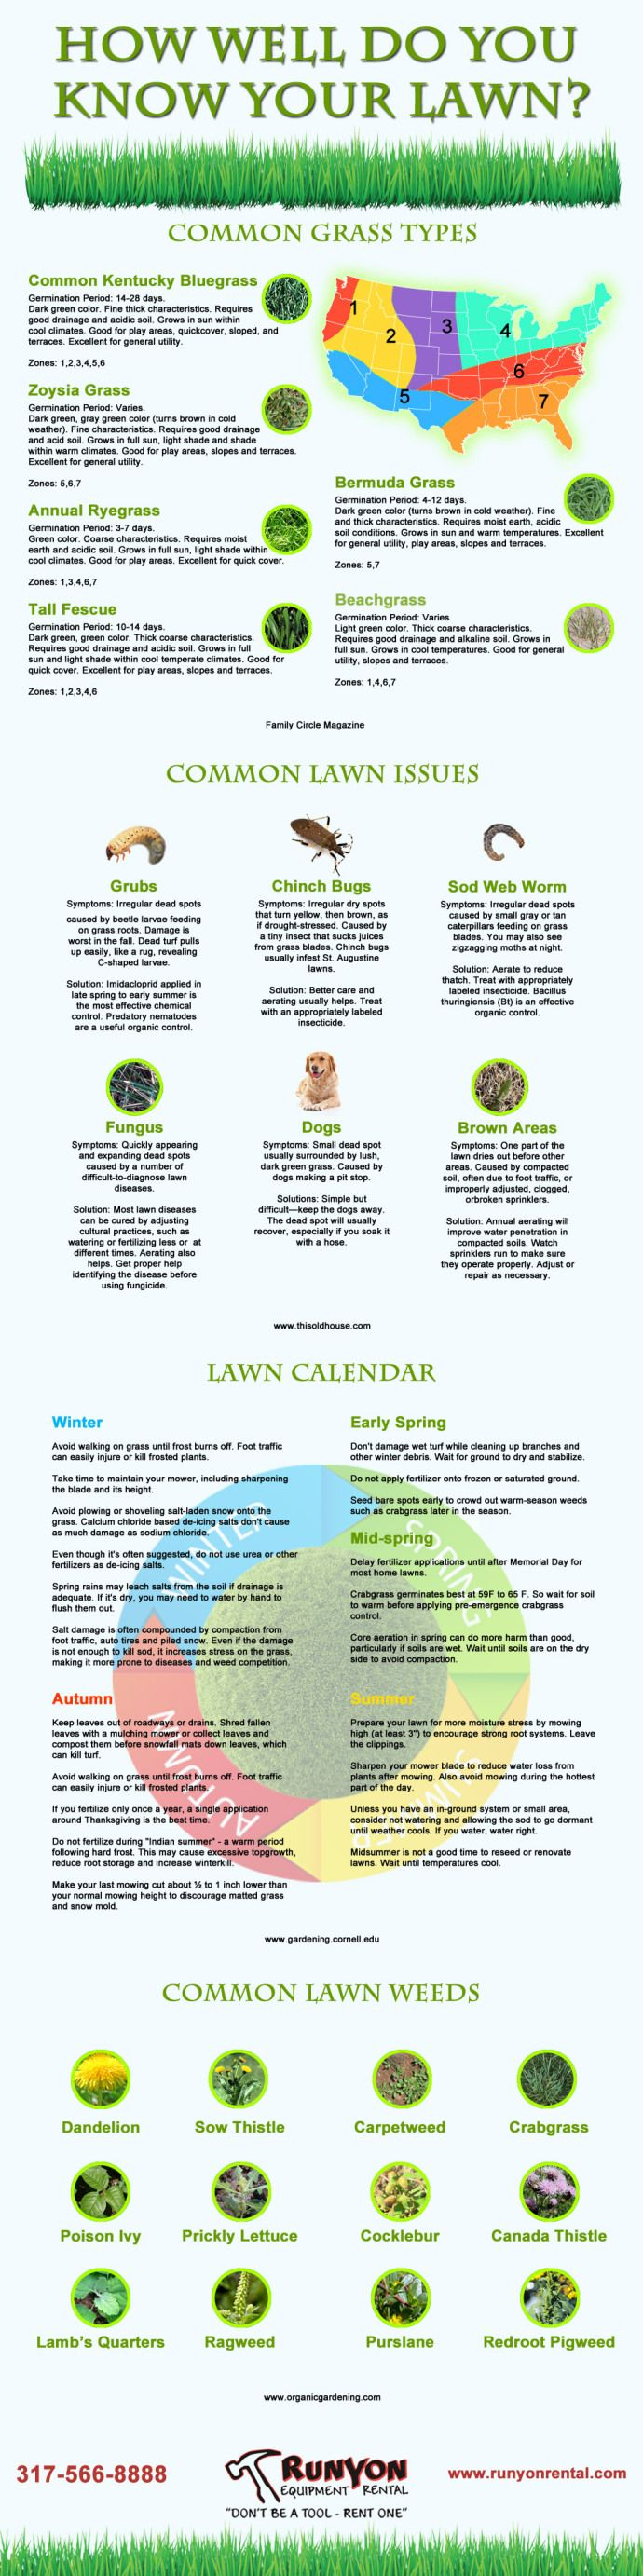 Lawn care advertising ideas - How Well Do You Know Your Lawn There Could Be Quite A Bit You Don